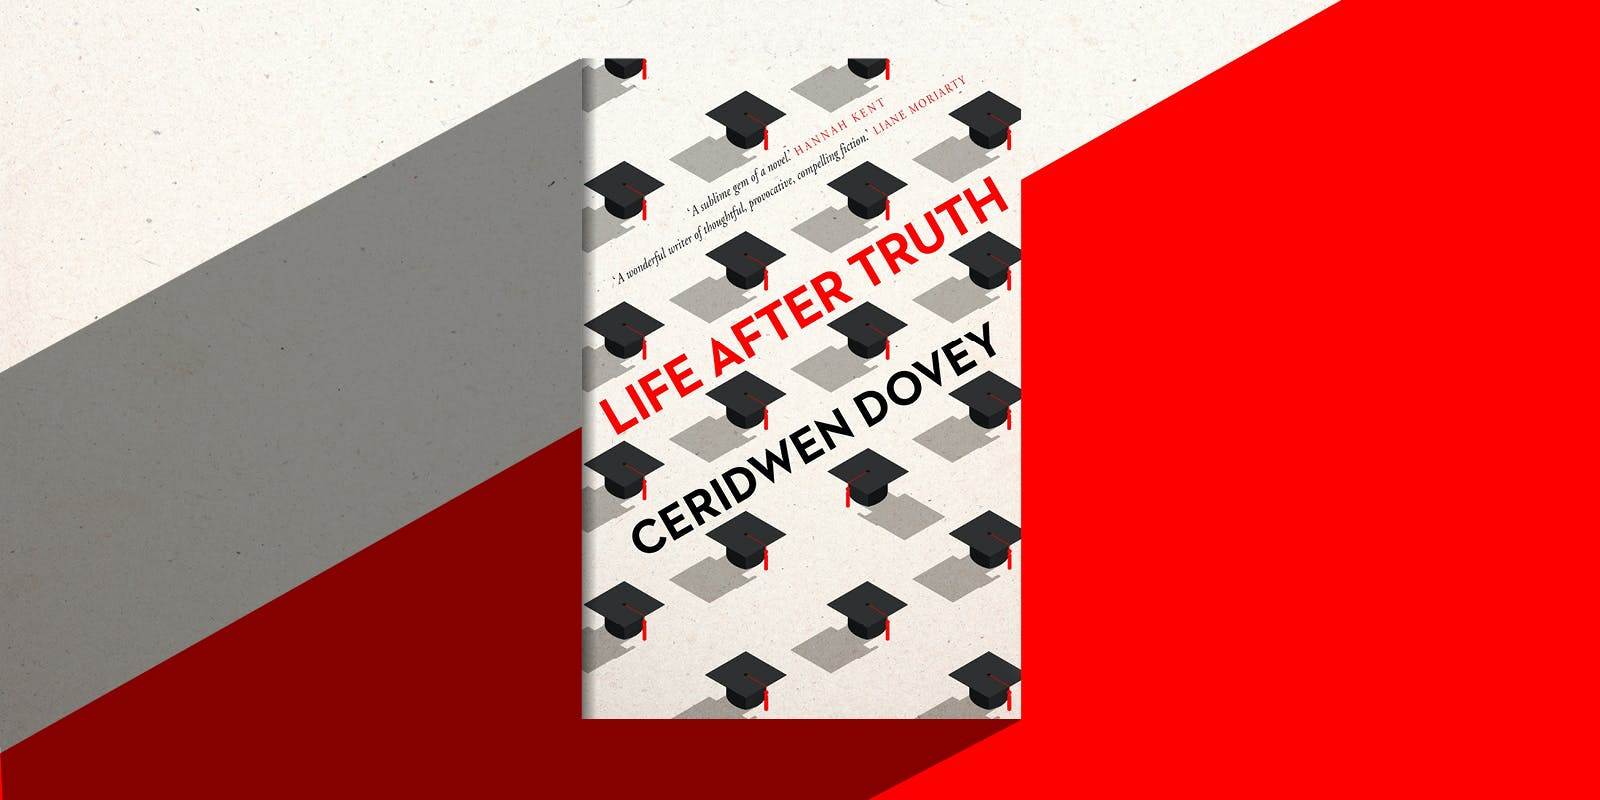 Life After Truth book club notes